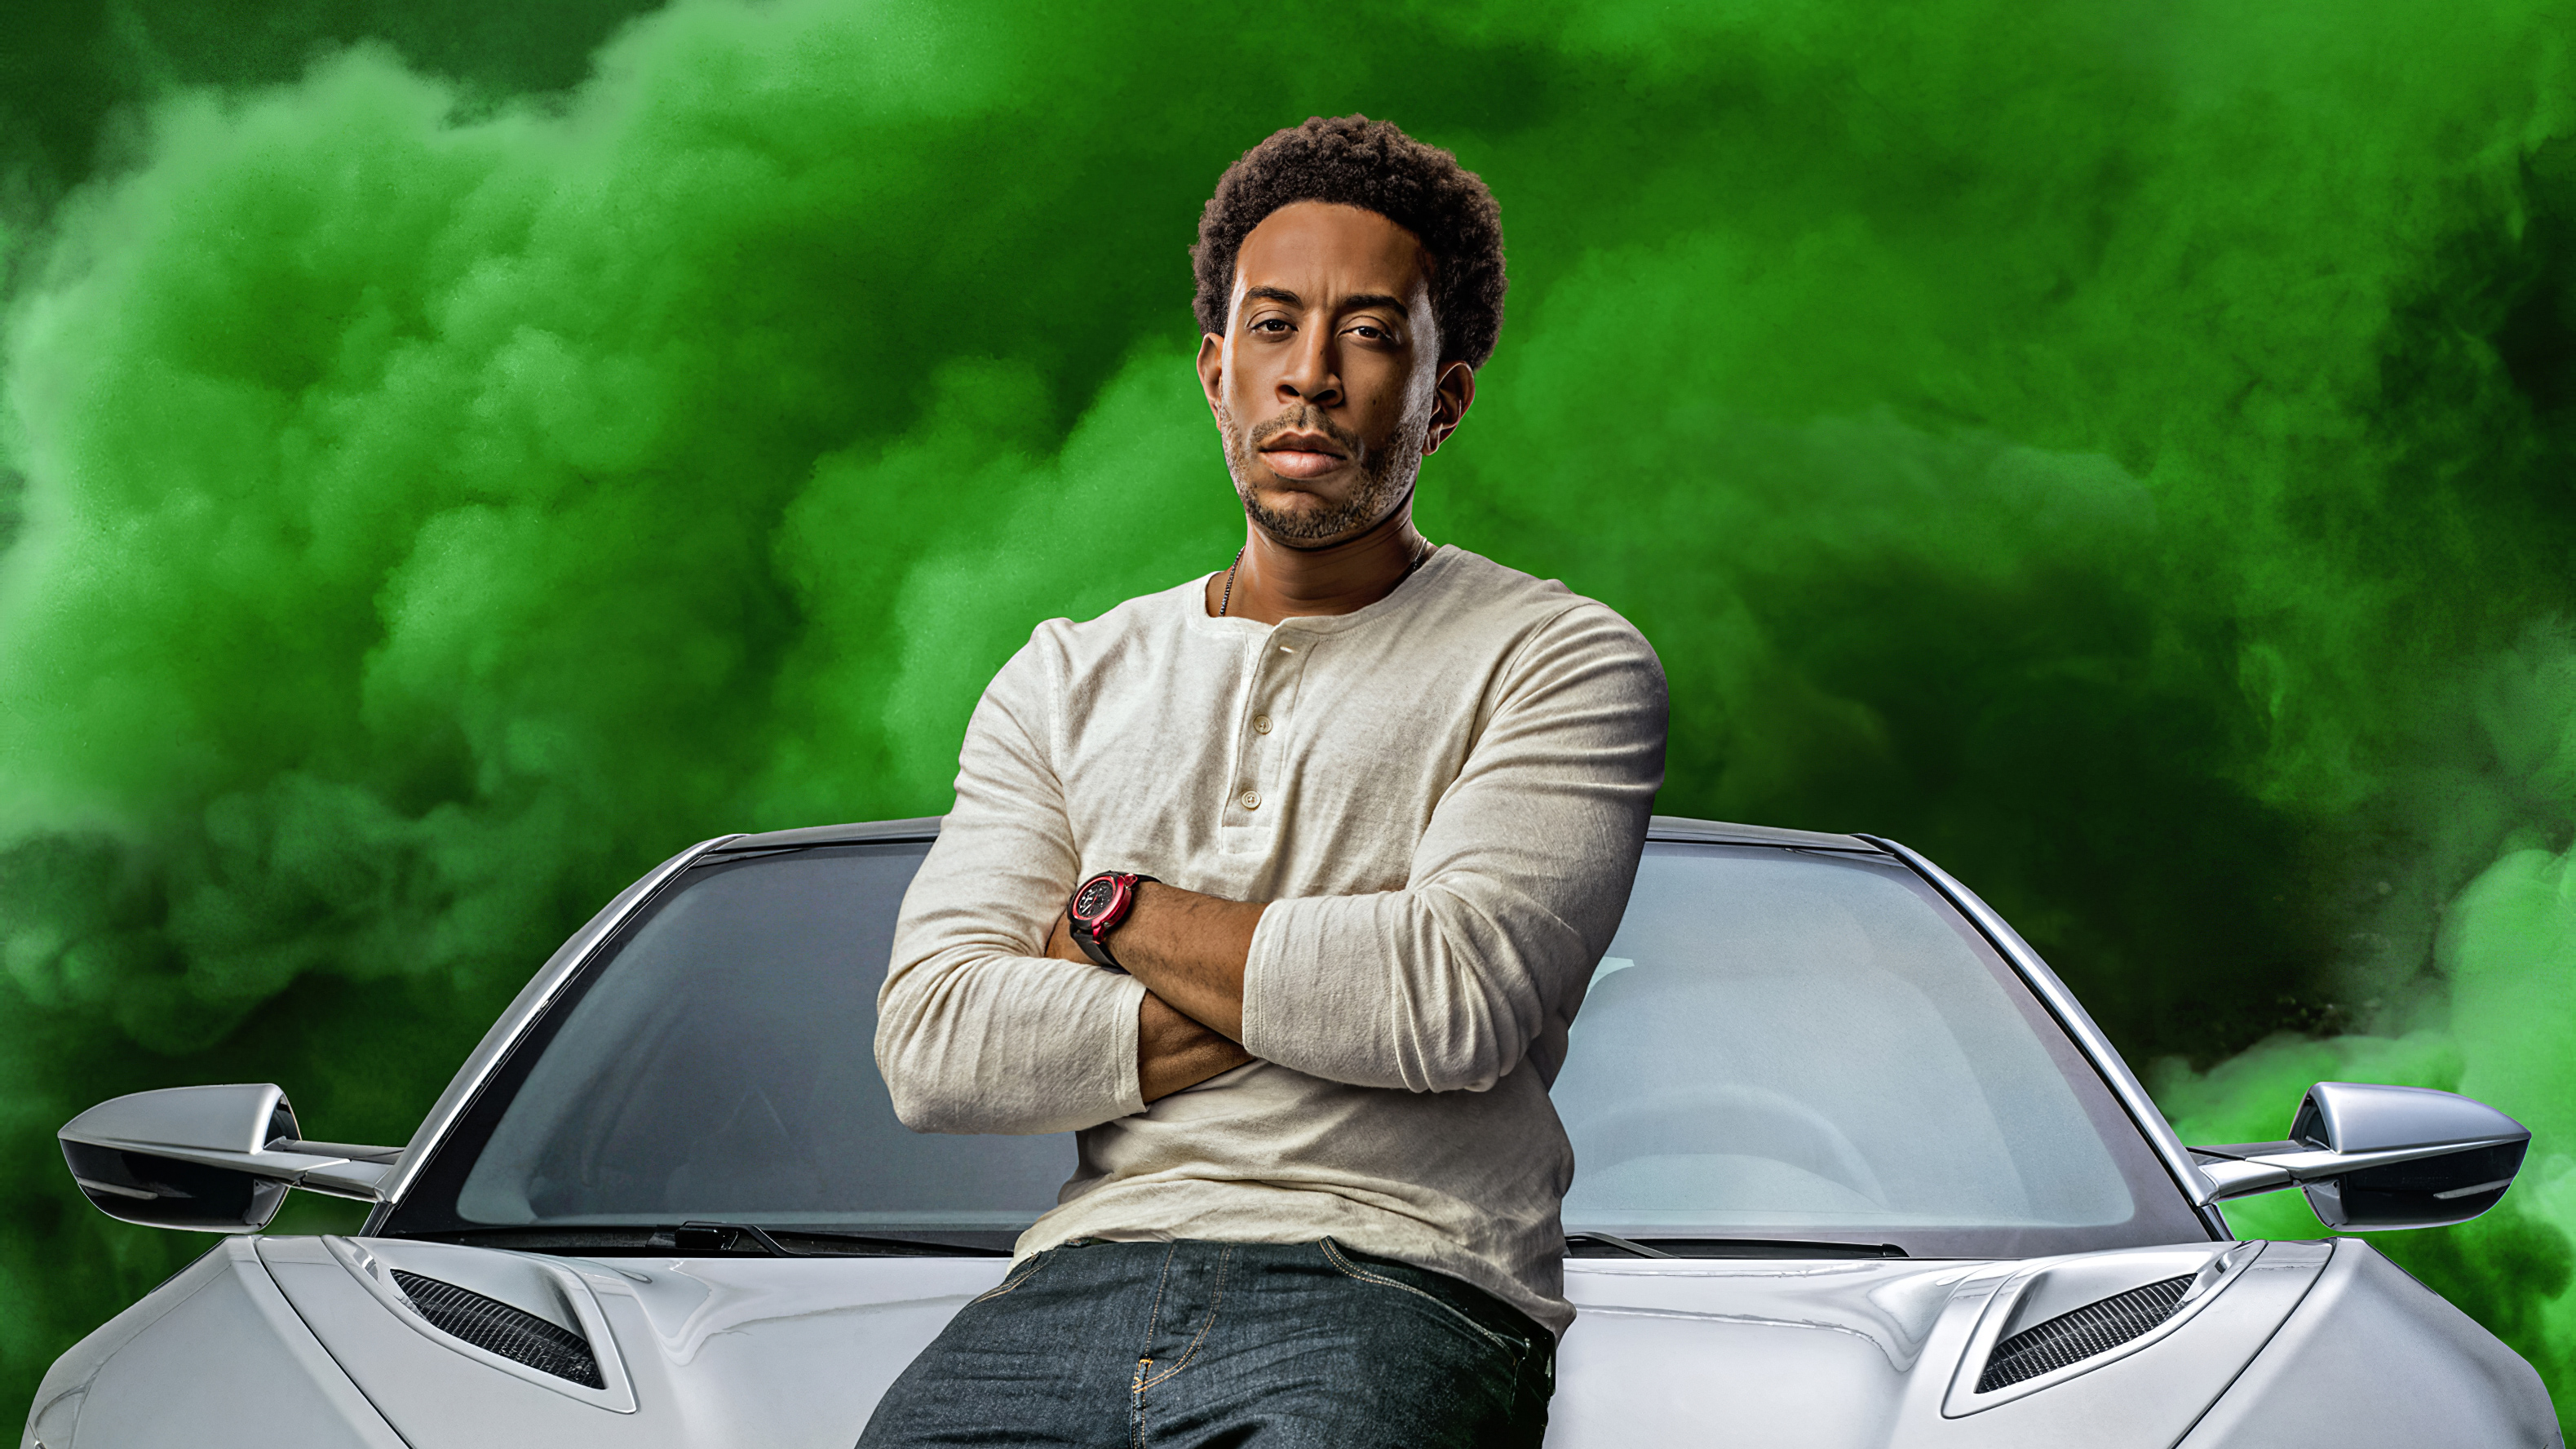 Ludacris In Fast And Furious 9 2020 Movie Hd Movies 4k Wallpapers Images Backgrounds Photos And Pictures